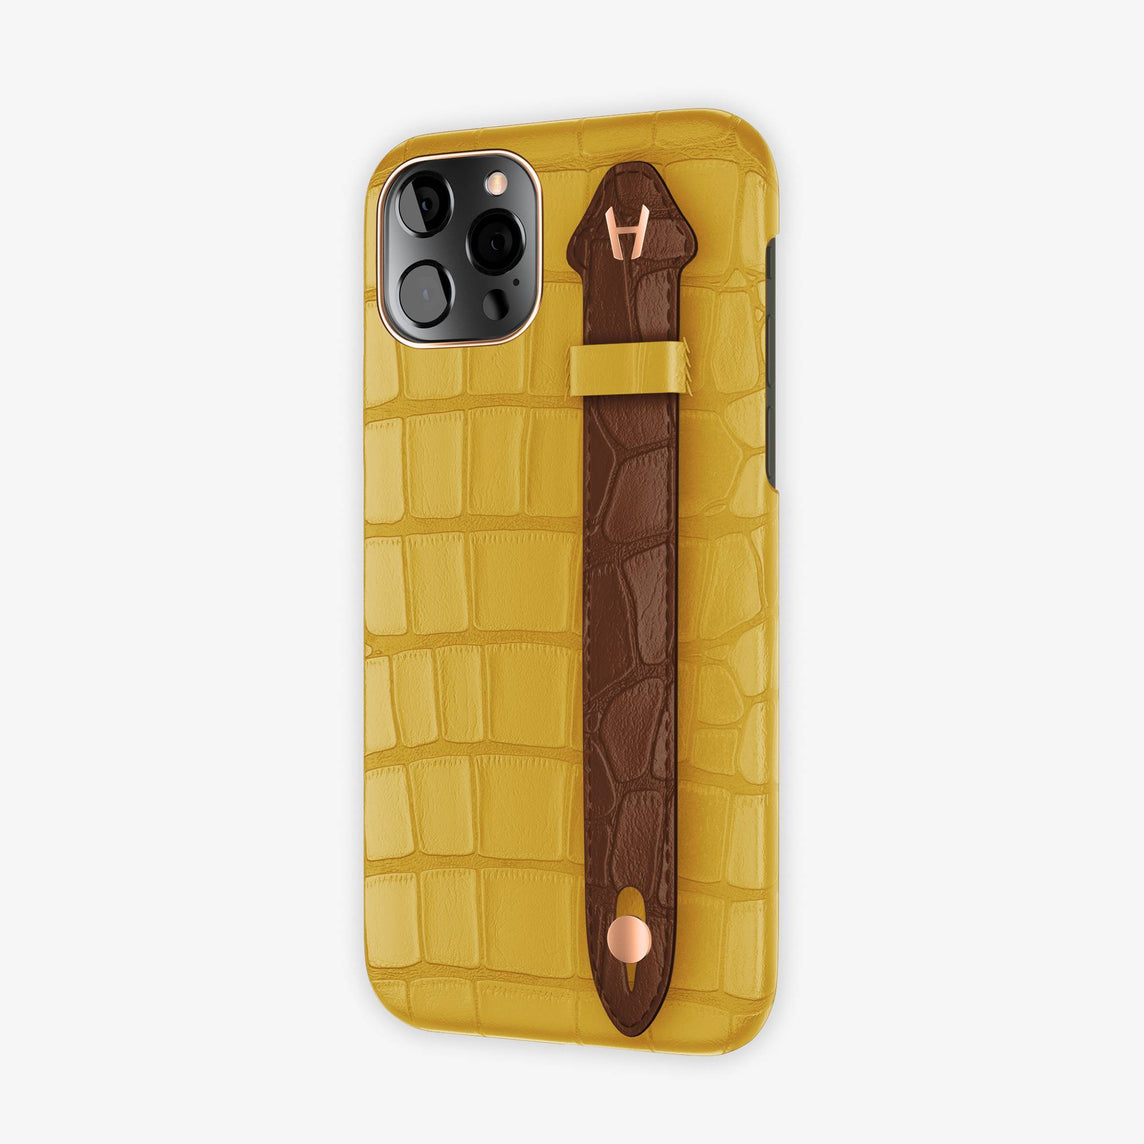 Alligator Side Finger Case iPhone 12 & iPhone 12 Pro | Yellow/Brown Chocolat -Rose Gold